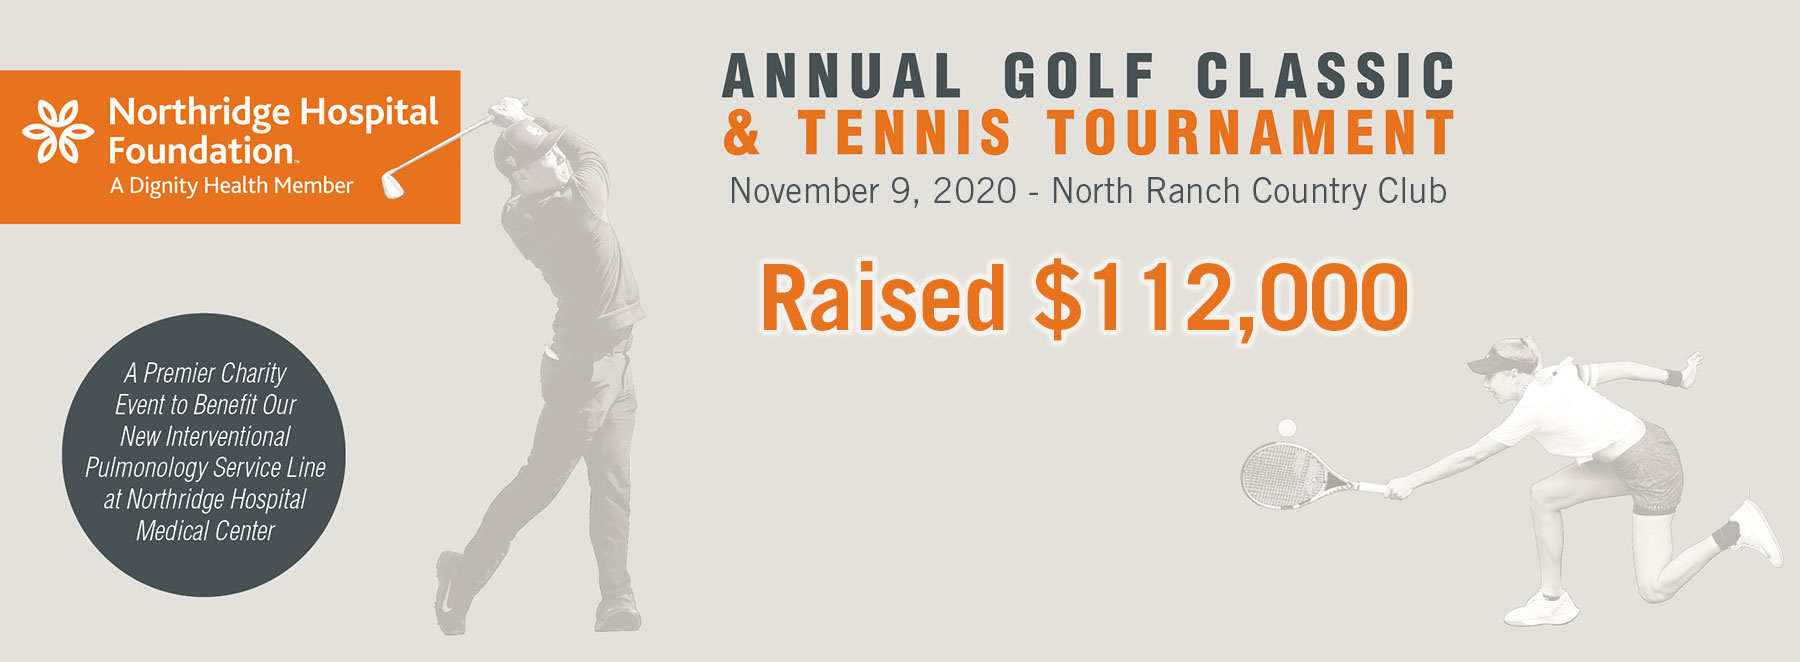 Golf Classic 2020 Post Results